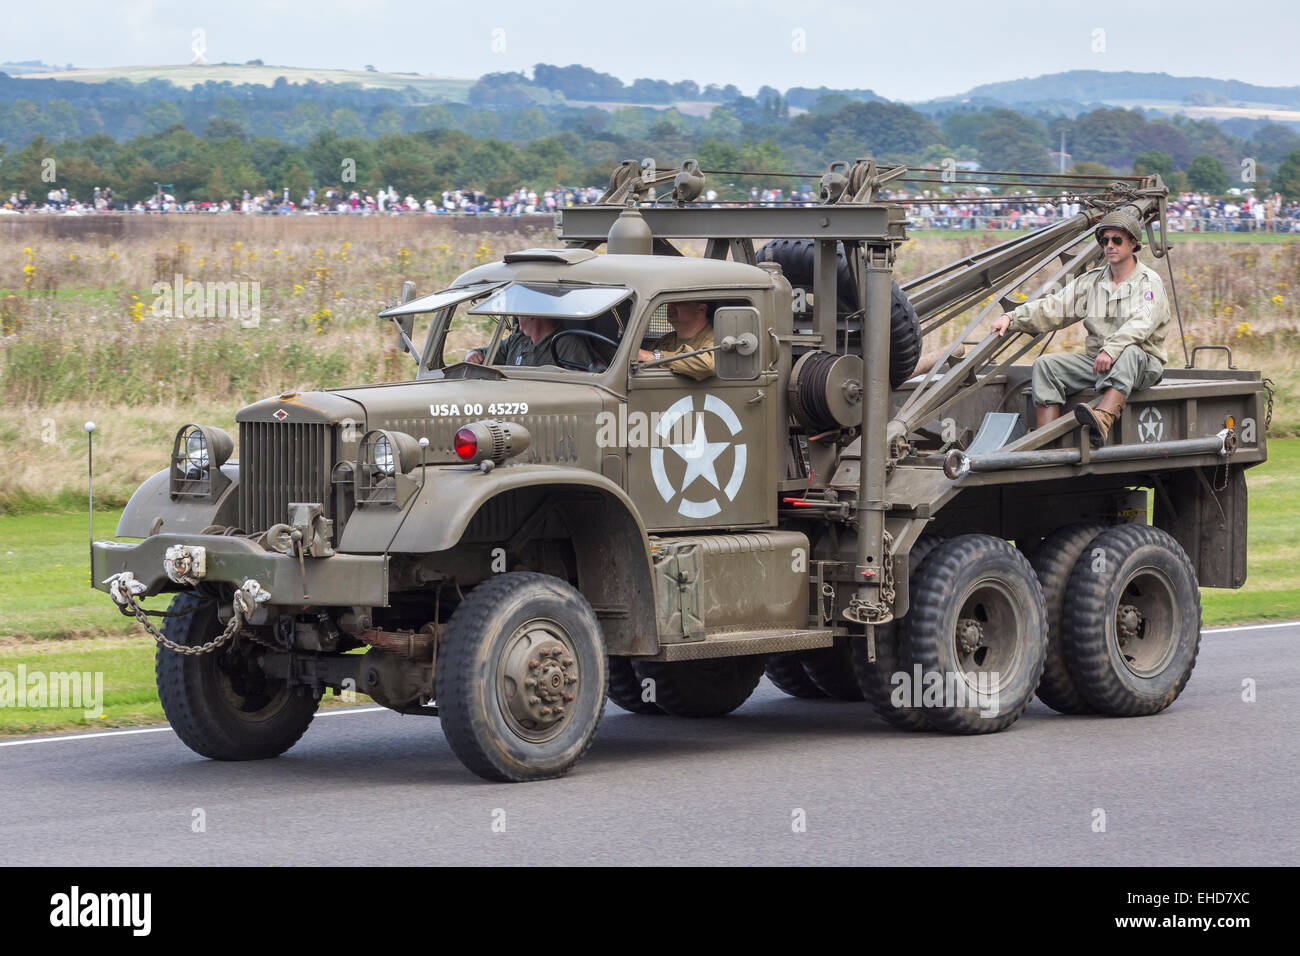 Stock Photo 1941 Diamond T 969a Wrecker On Parade At The 2014 Goodwood Revival 79582228